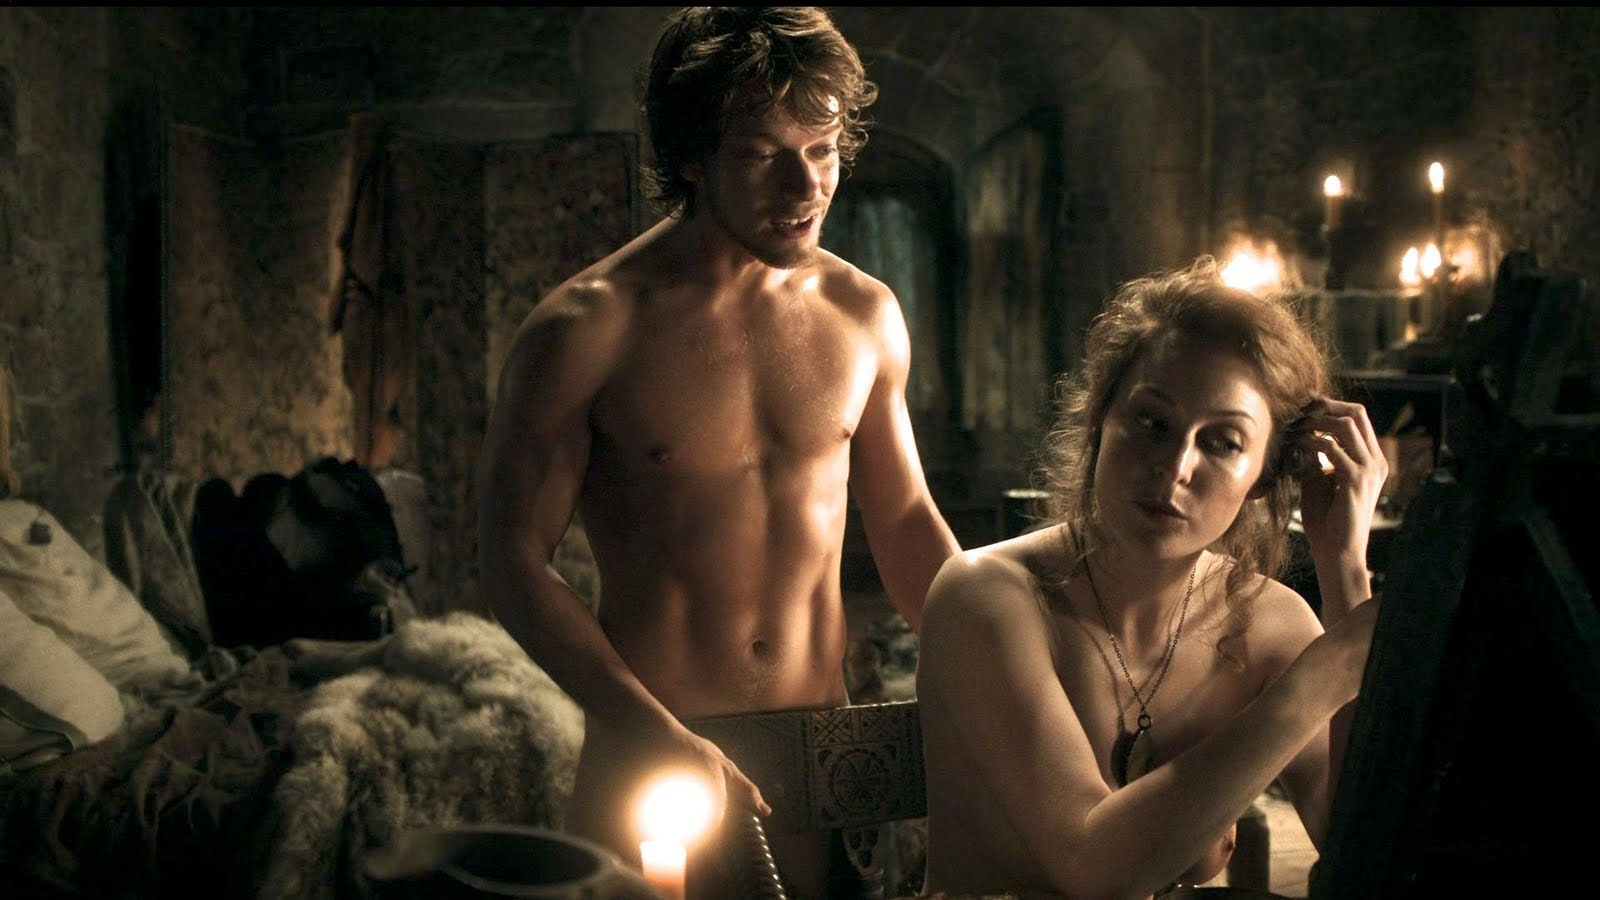 Game of thrones frontal nudity